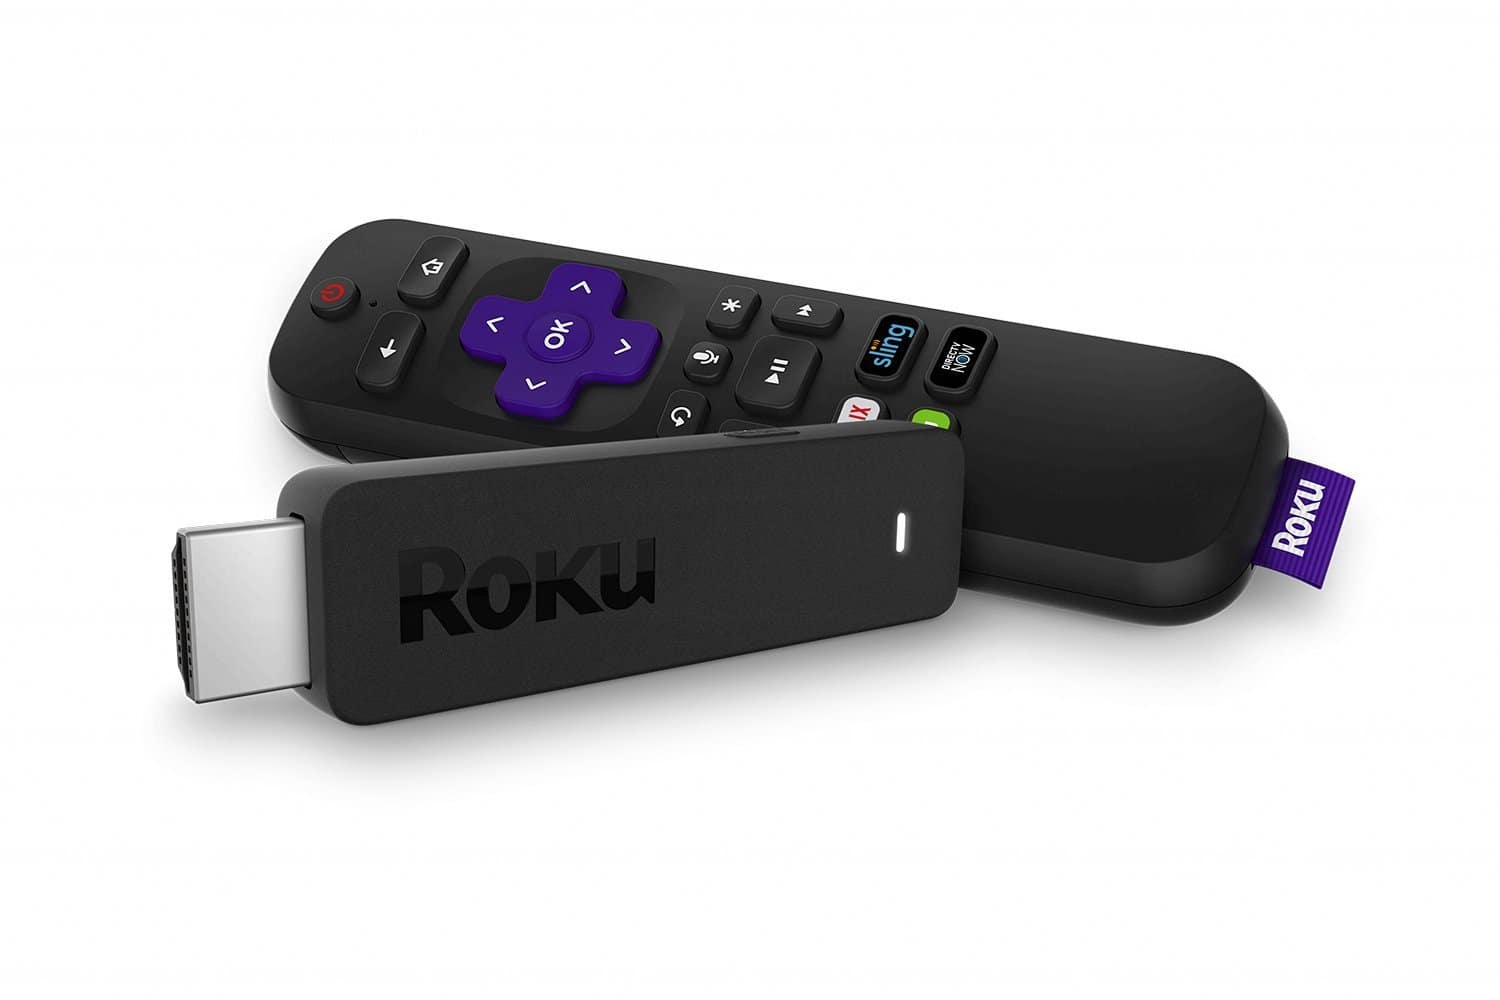 Roku Streaming Stick with voice remote (2017 model 3800) $35